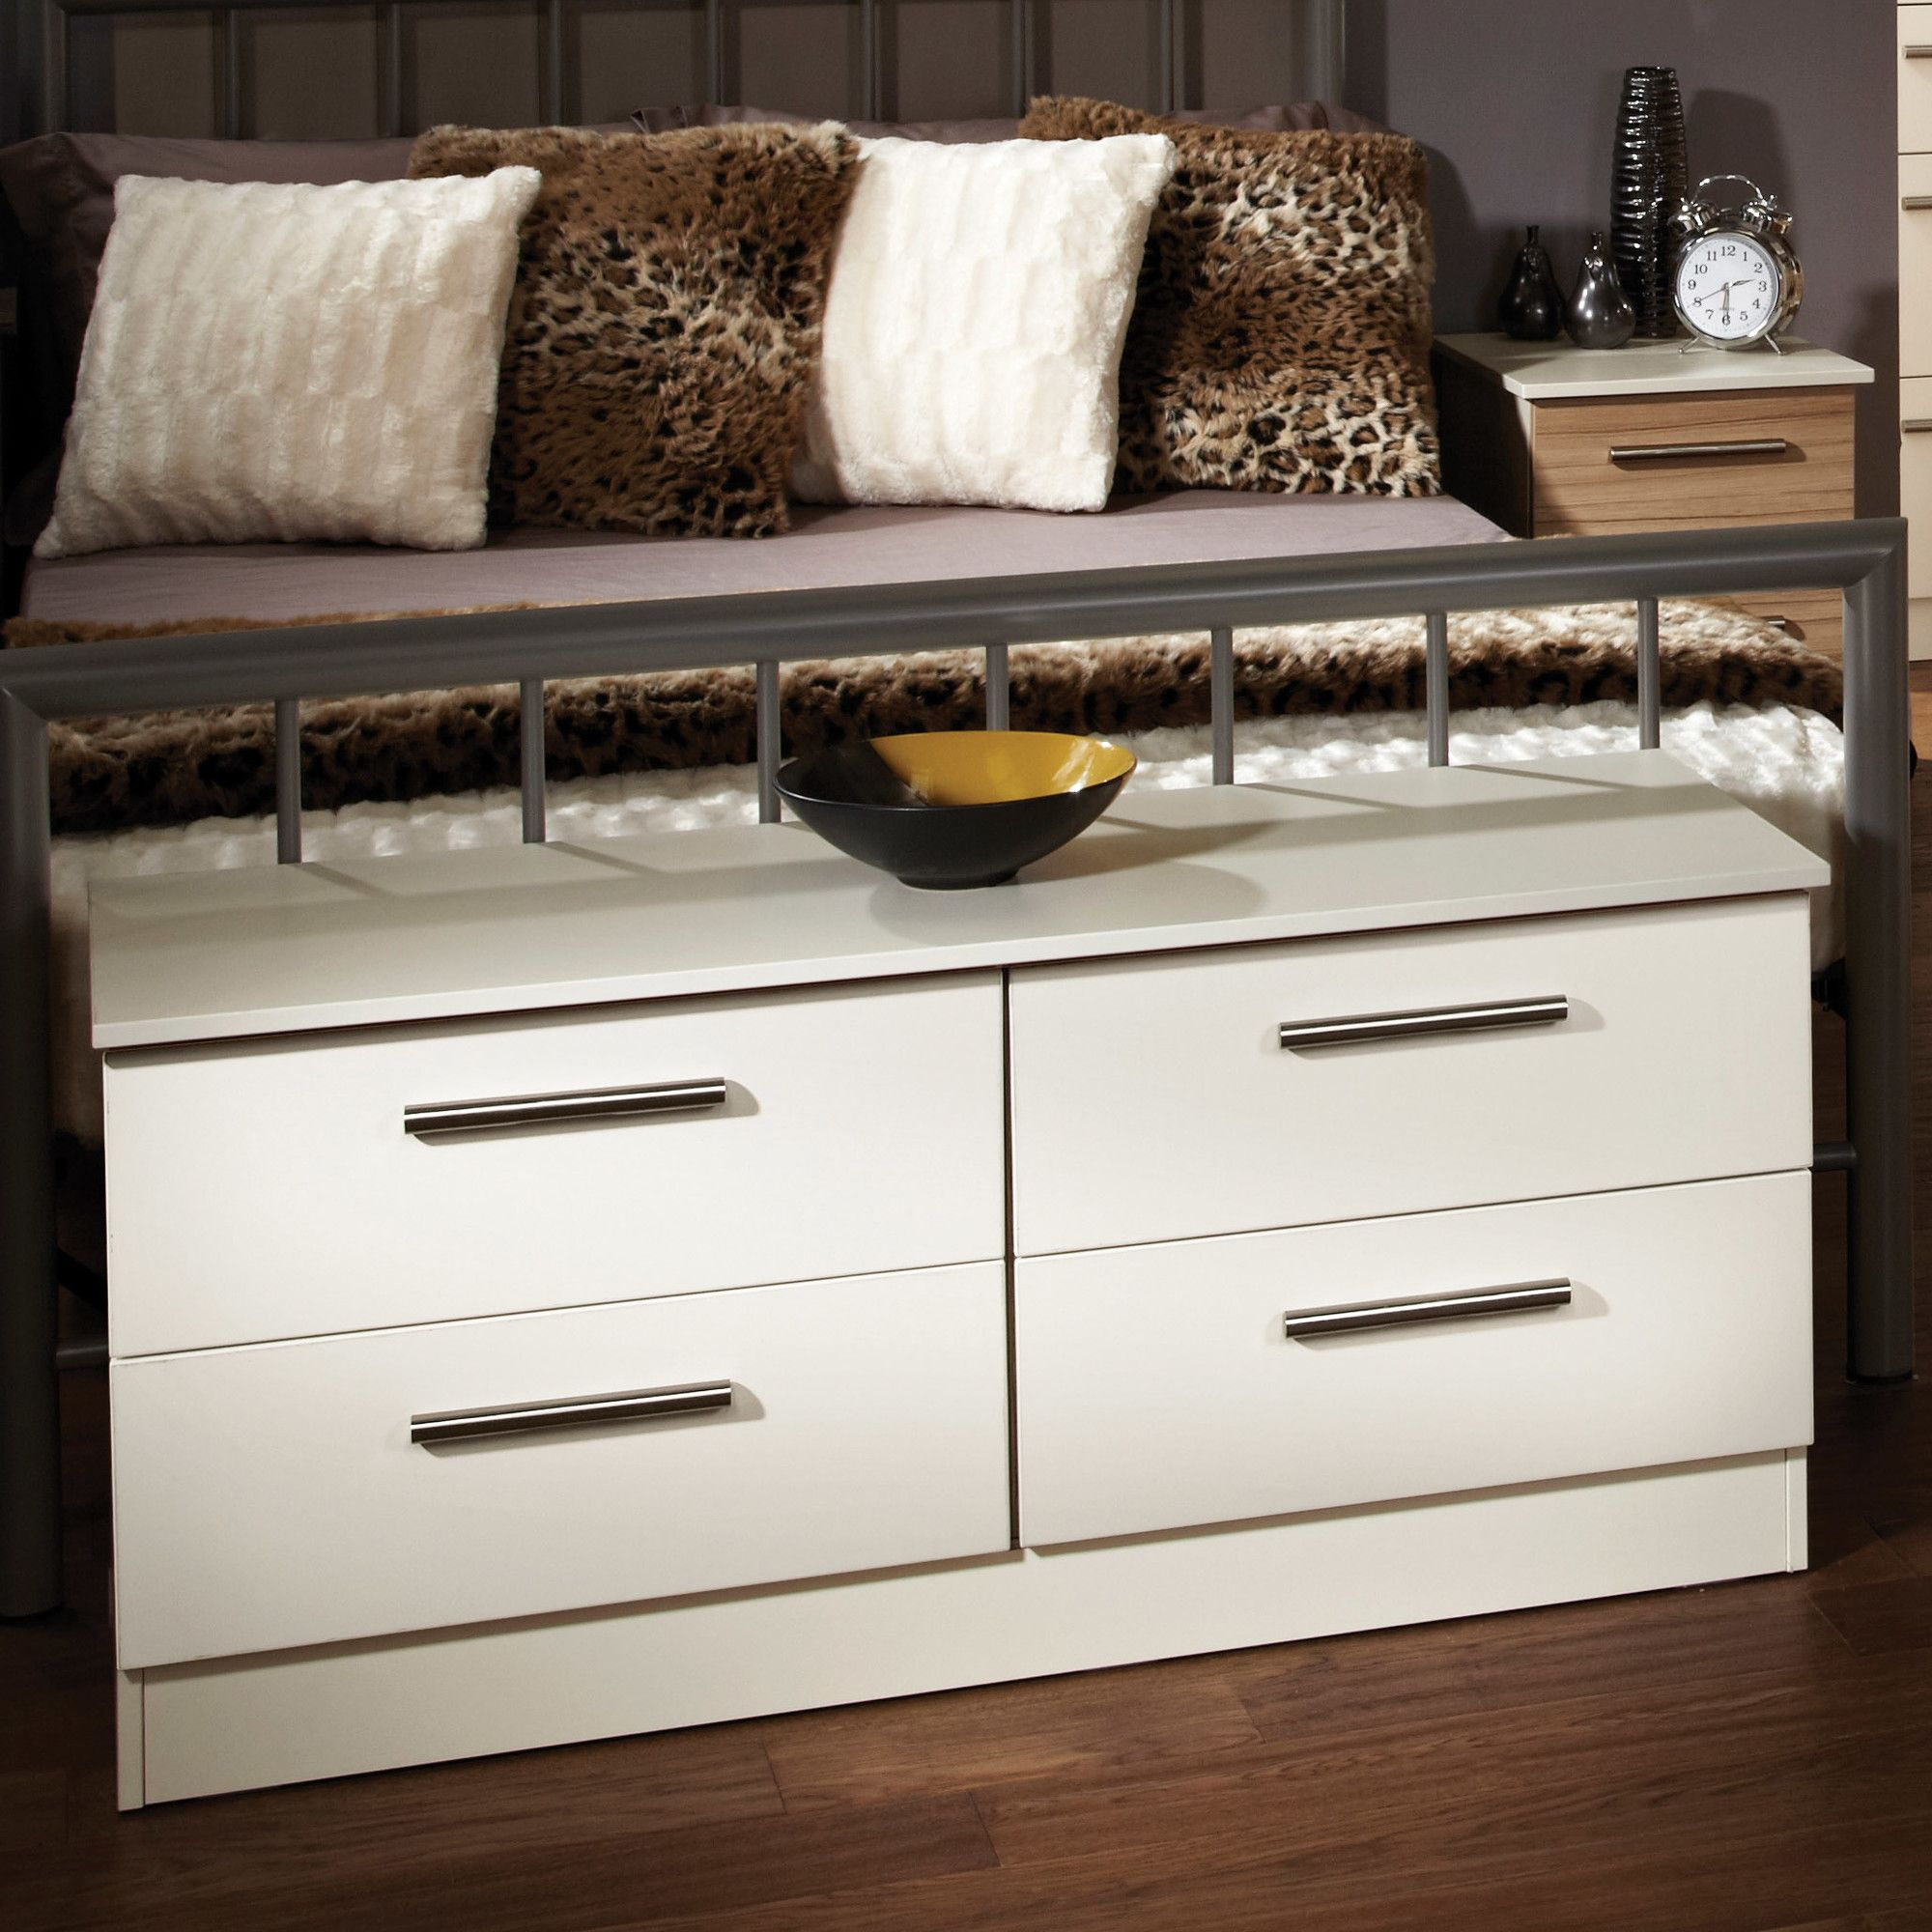 Welcome Furniture Contrast 4 Drawer Bed Box - Vanilla at Tesco Direct